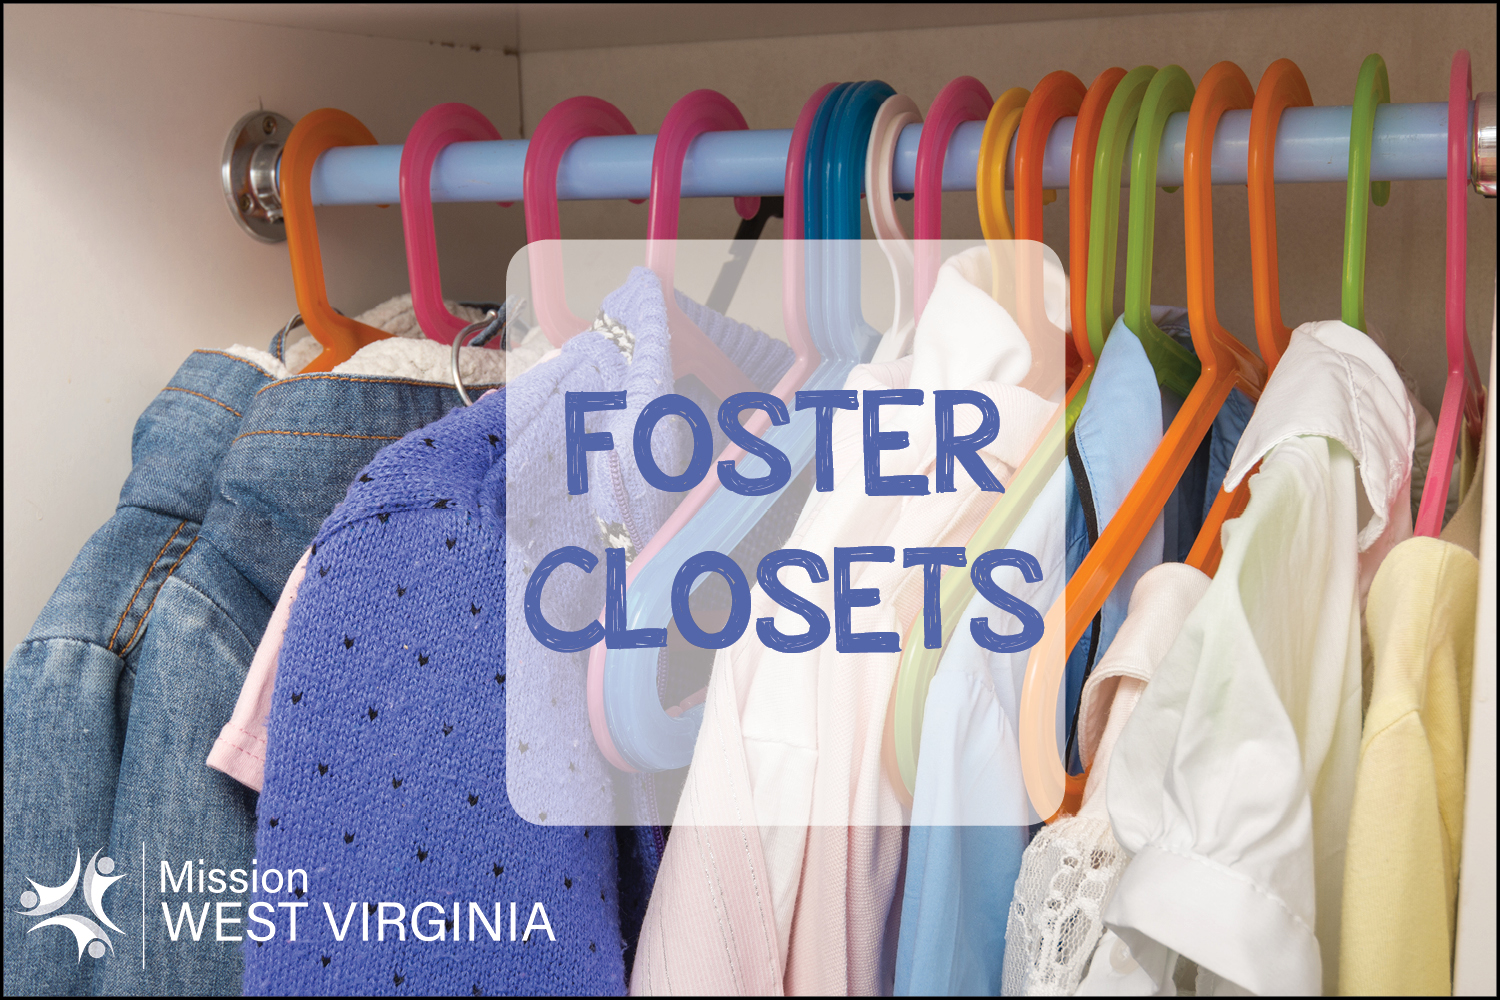 Foster Closets Graphic.jpg